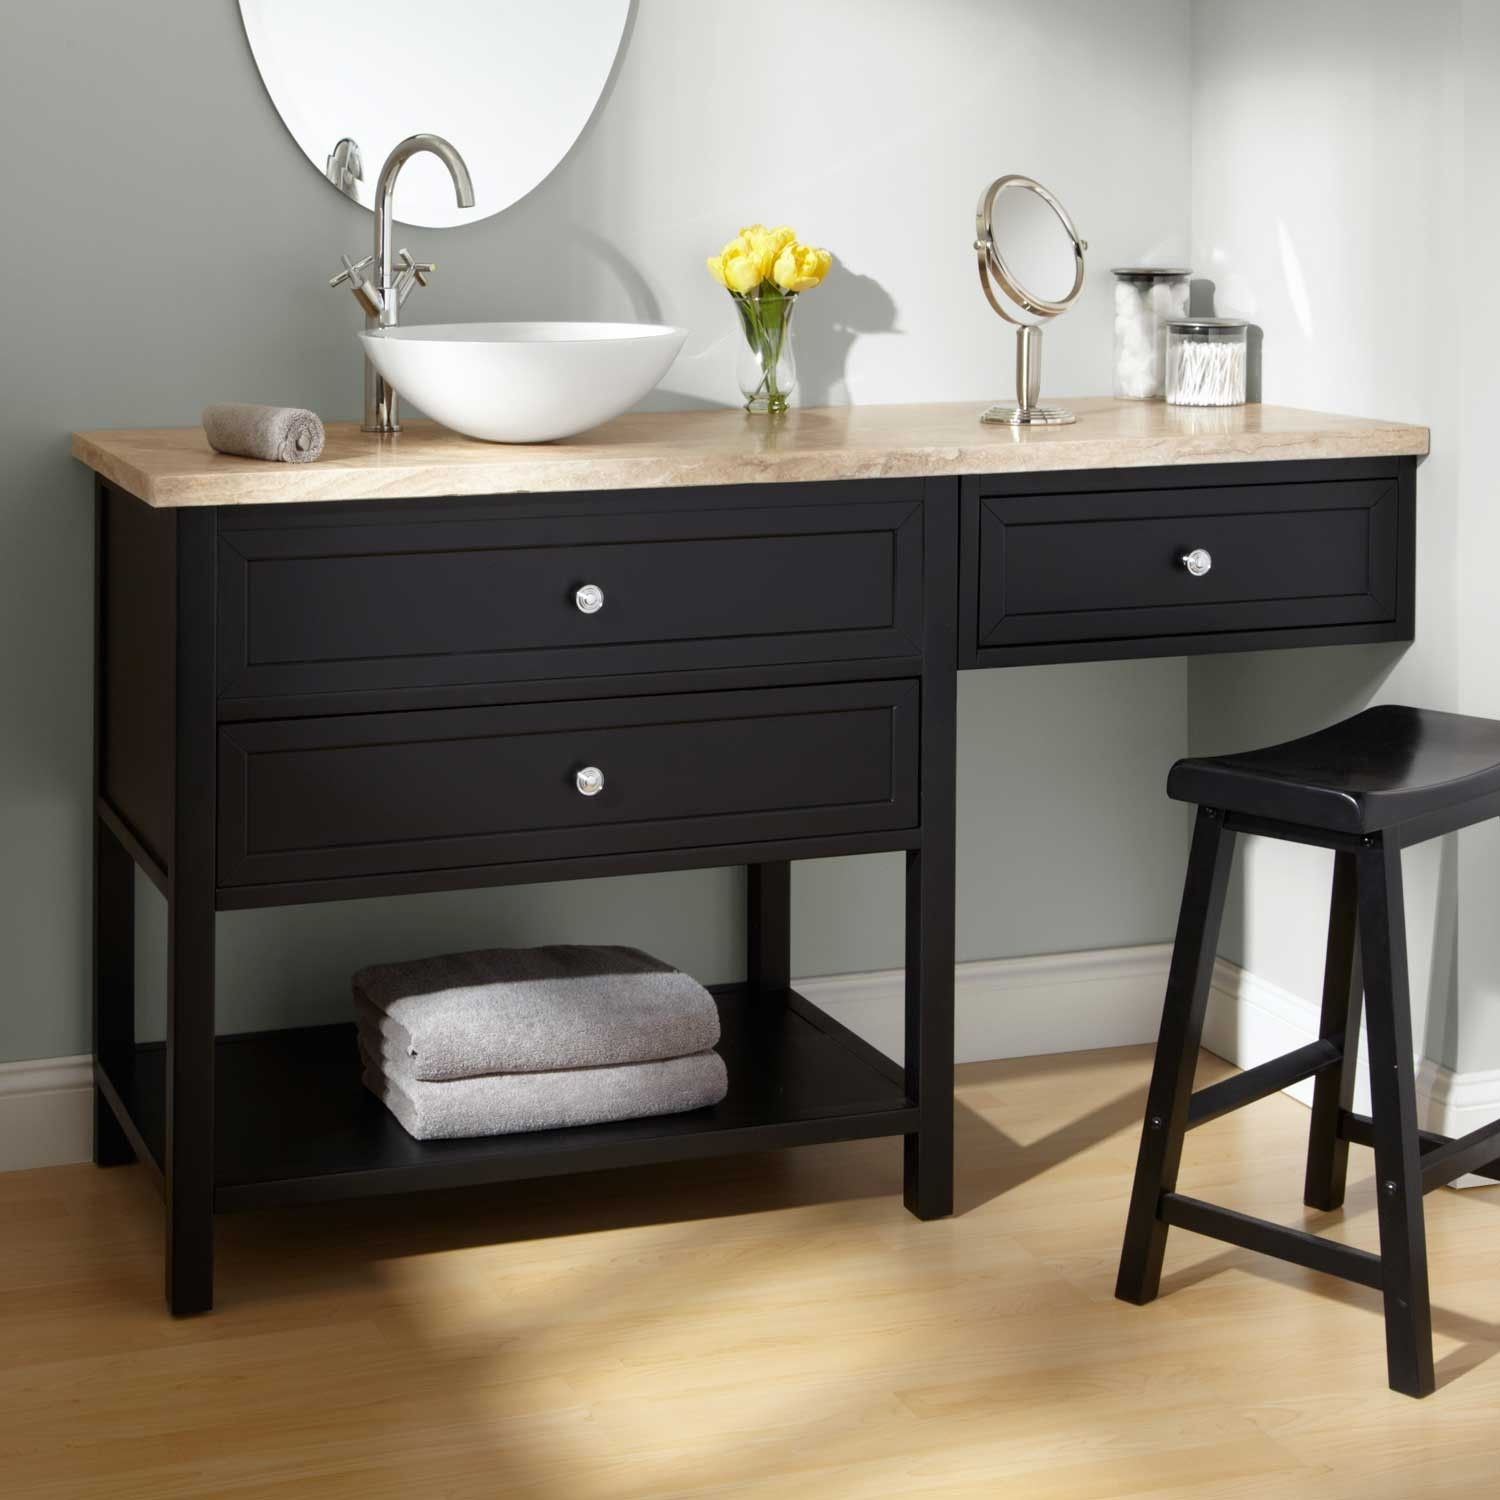 Bathroom Makeup Vanity And Chair Sink Vanities 60 Taren Black Vessel Sink Vanity With